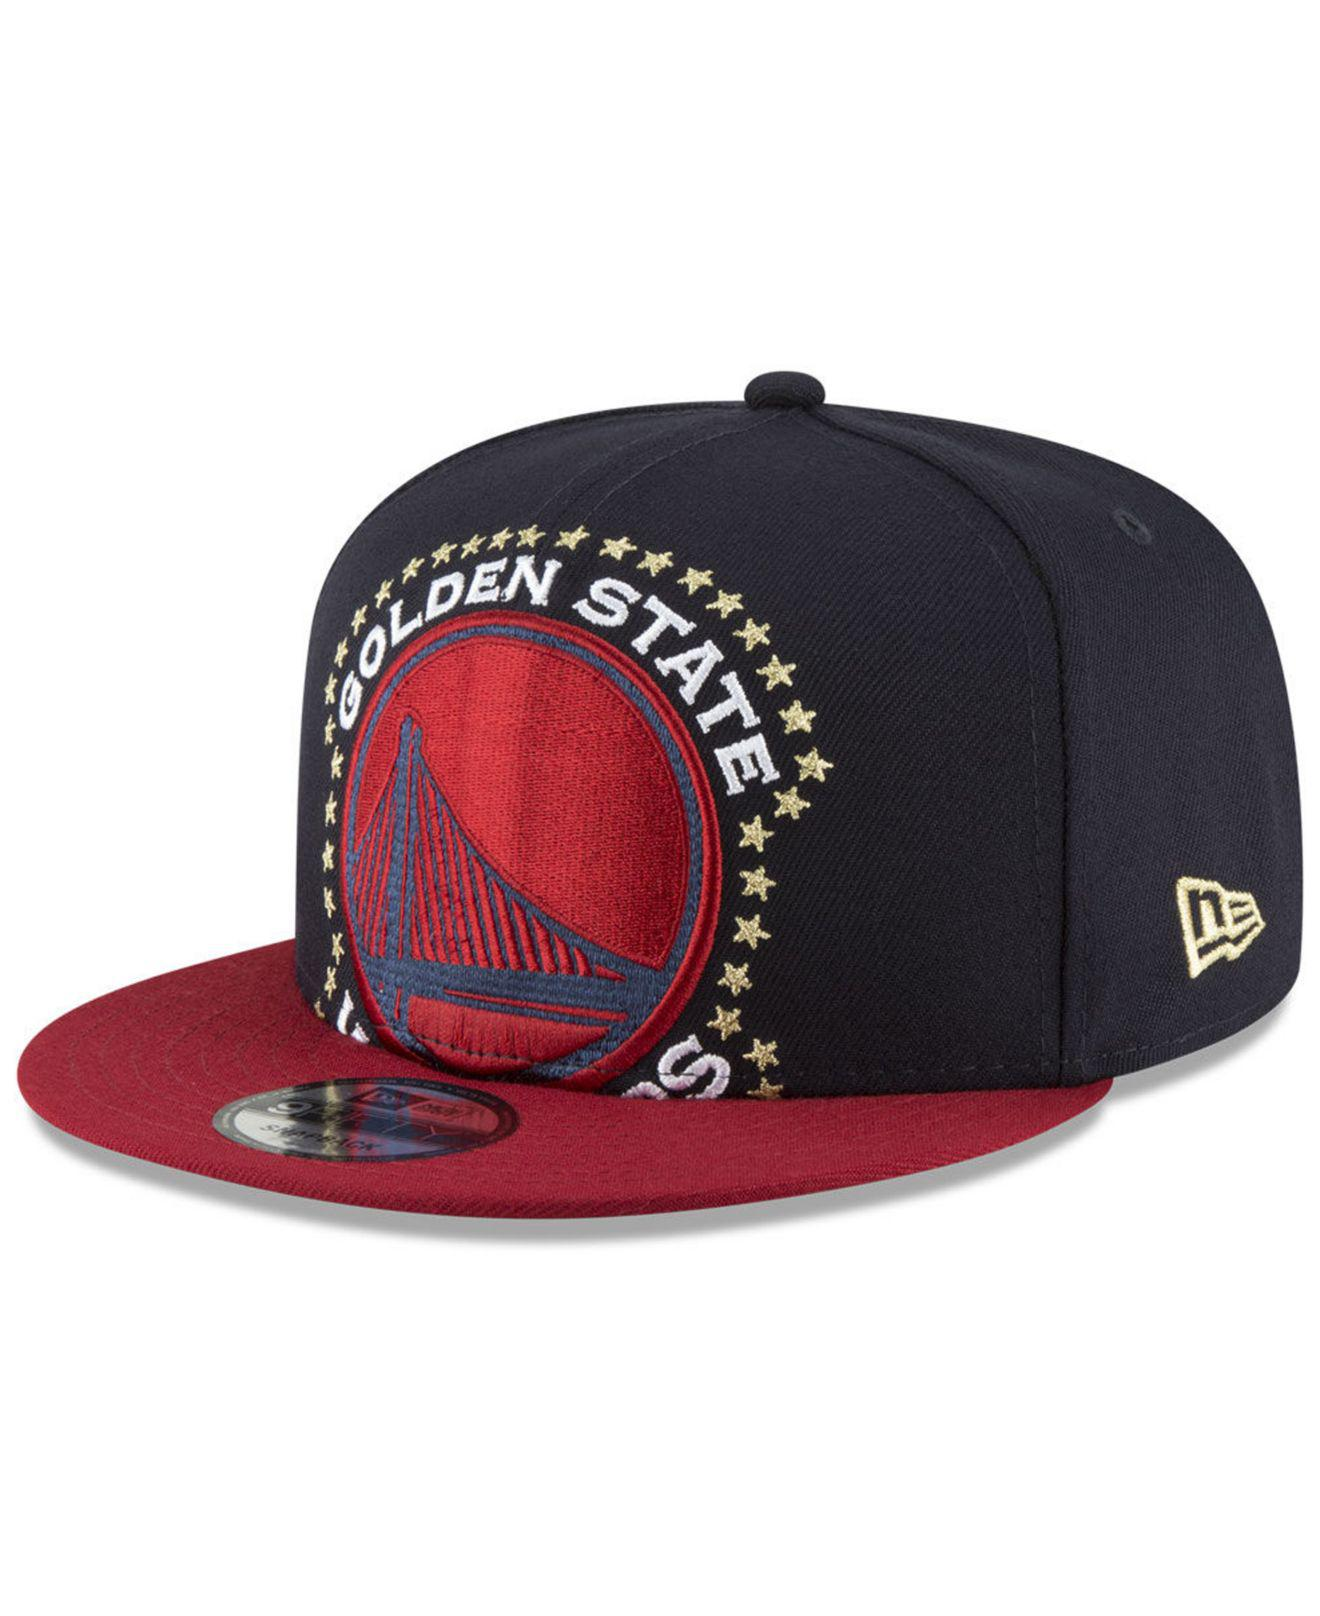 uk availability 46fca e0859 ... coupon code for ktz. mens blue golden state warriors xl americana 9fifty  snapback cap a990a